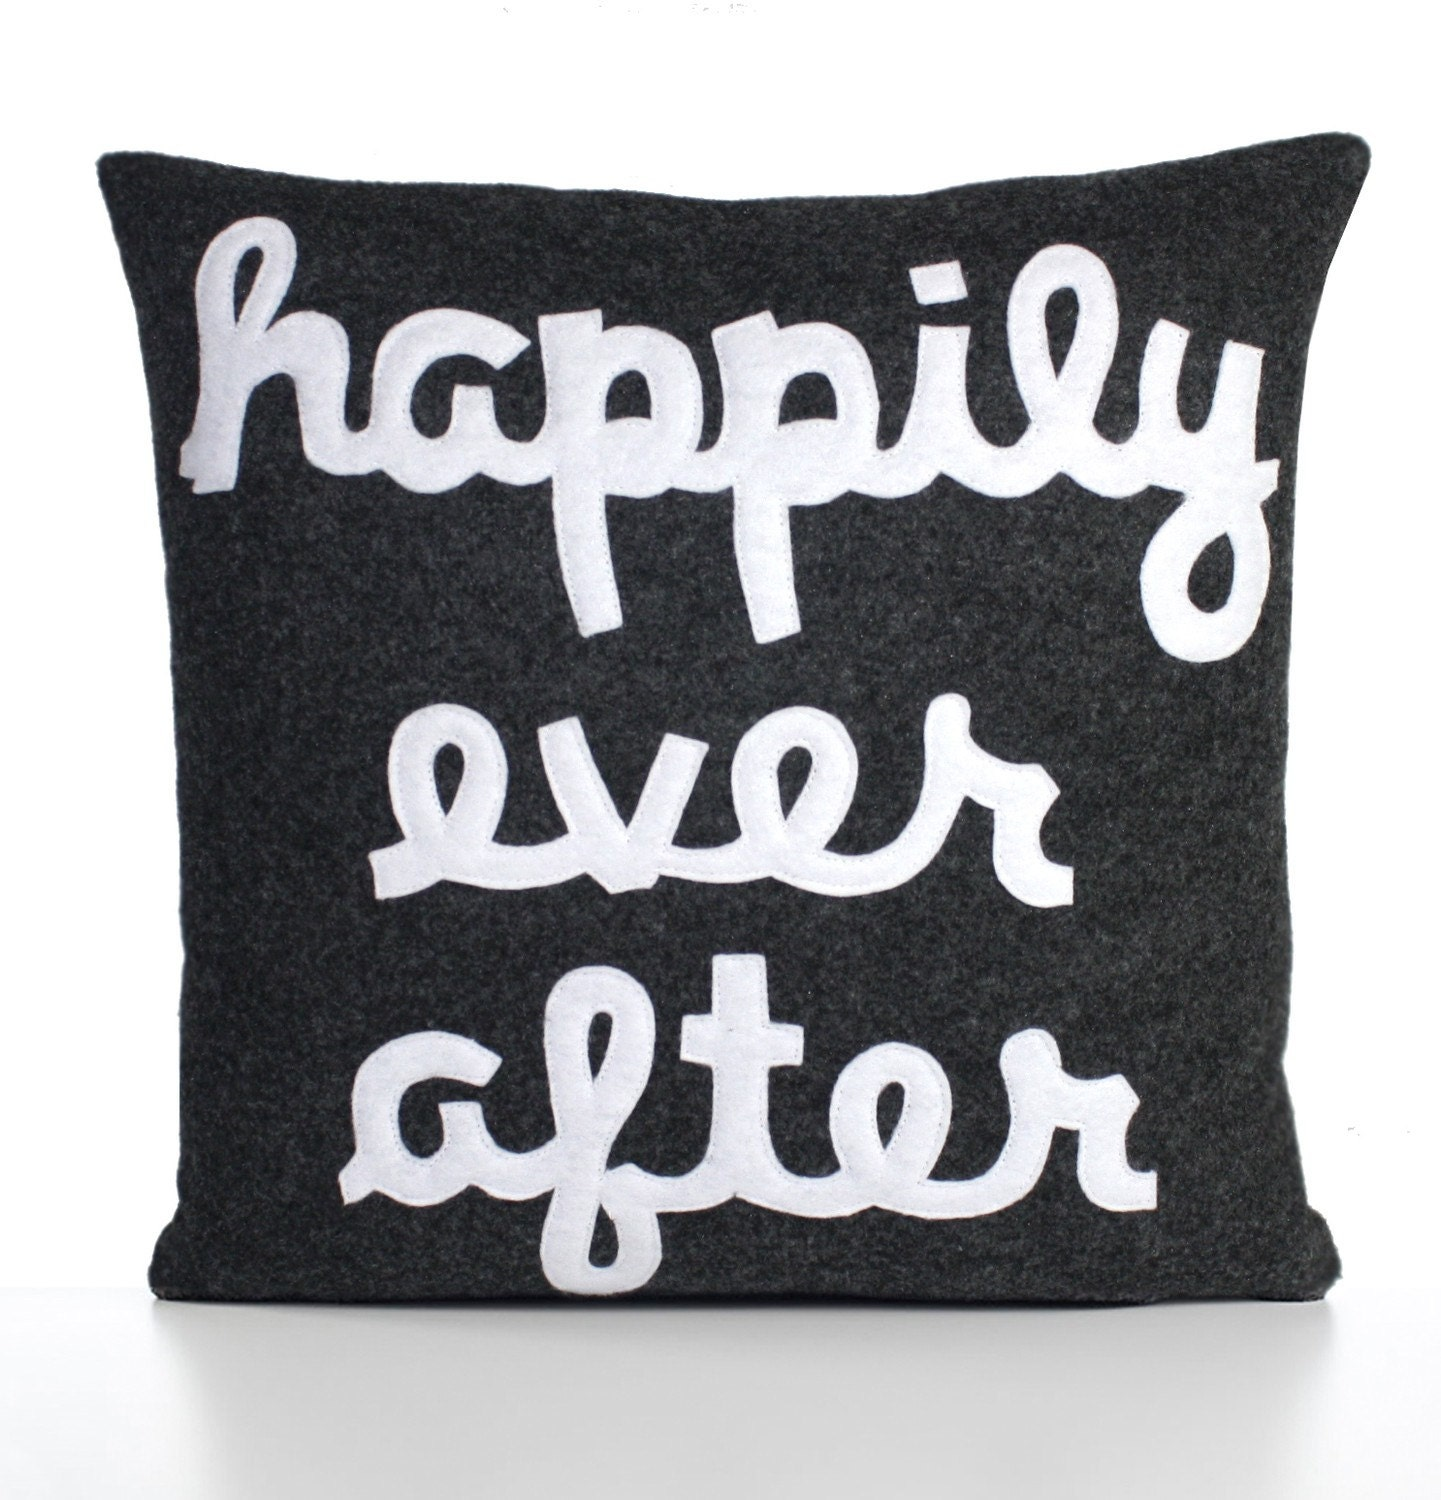 HAPPILY EVER AFTER - charcoal and white- 22 inch recycled felt applique pillow